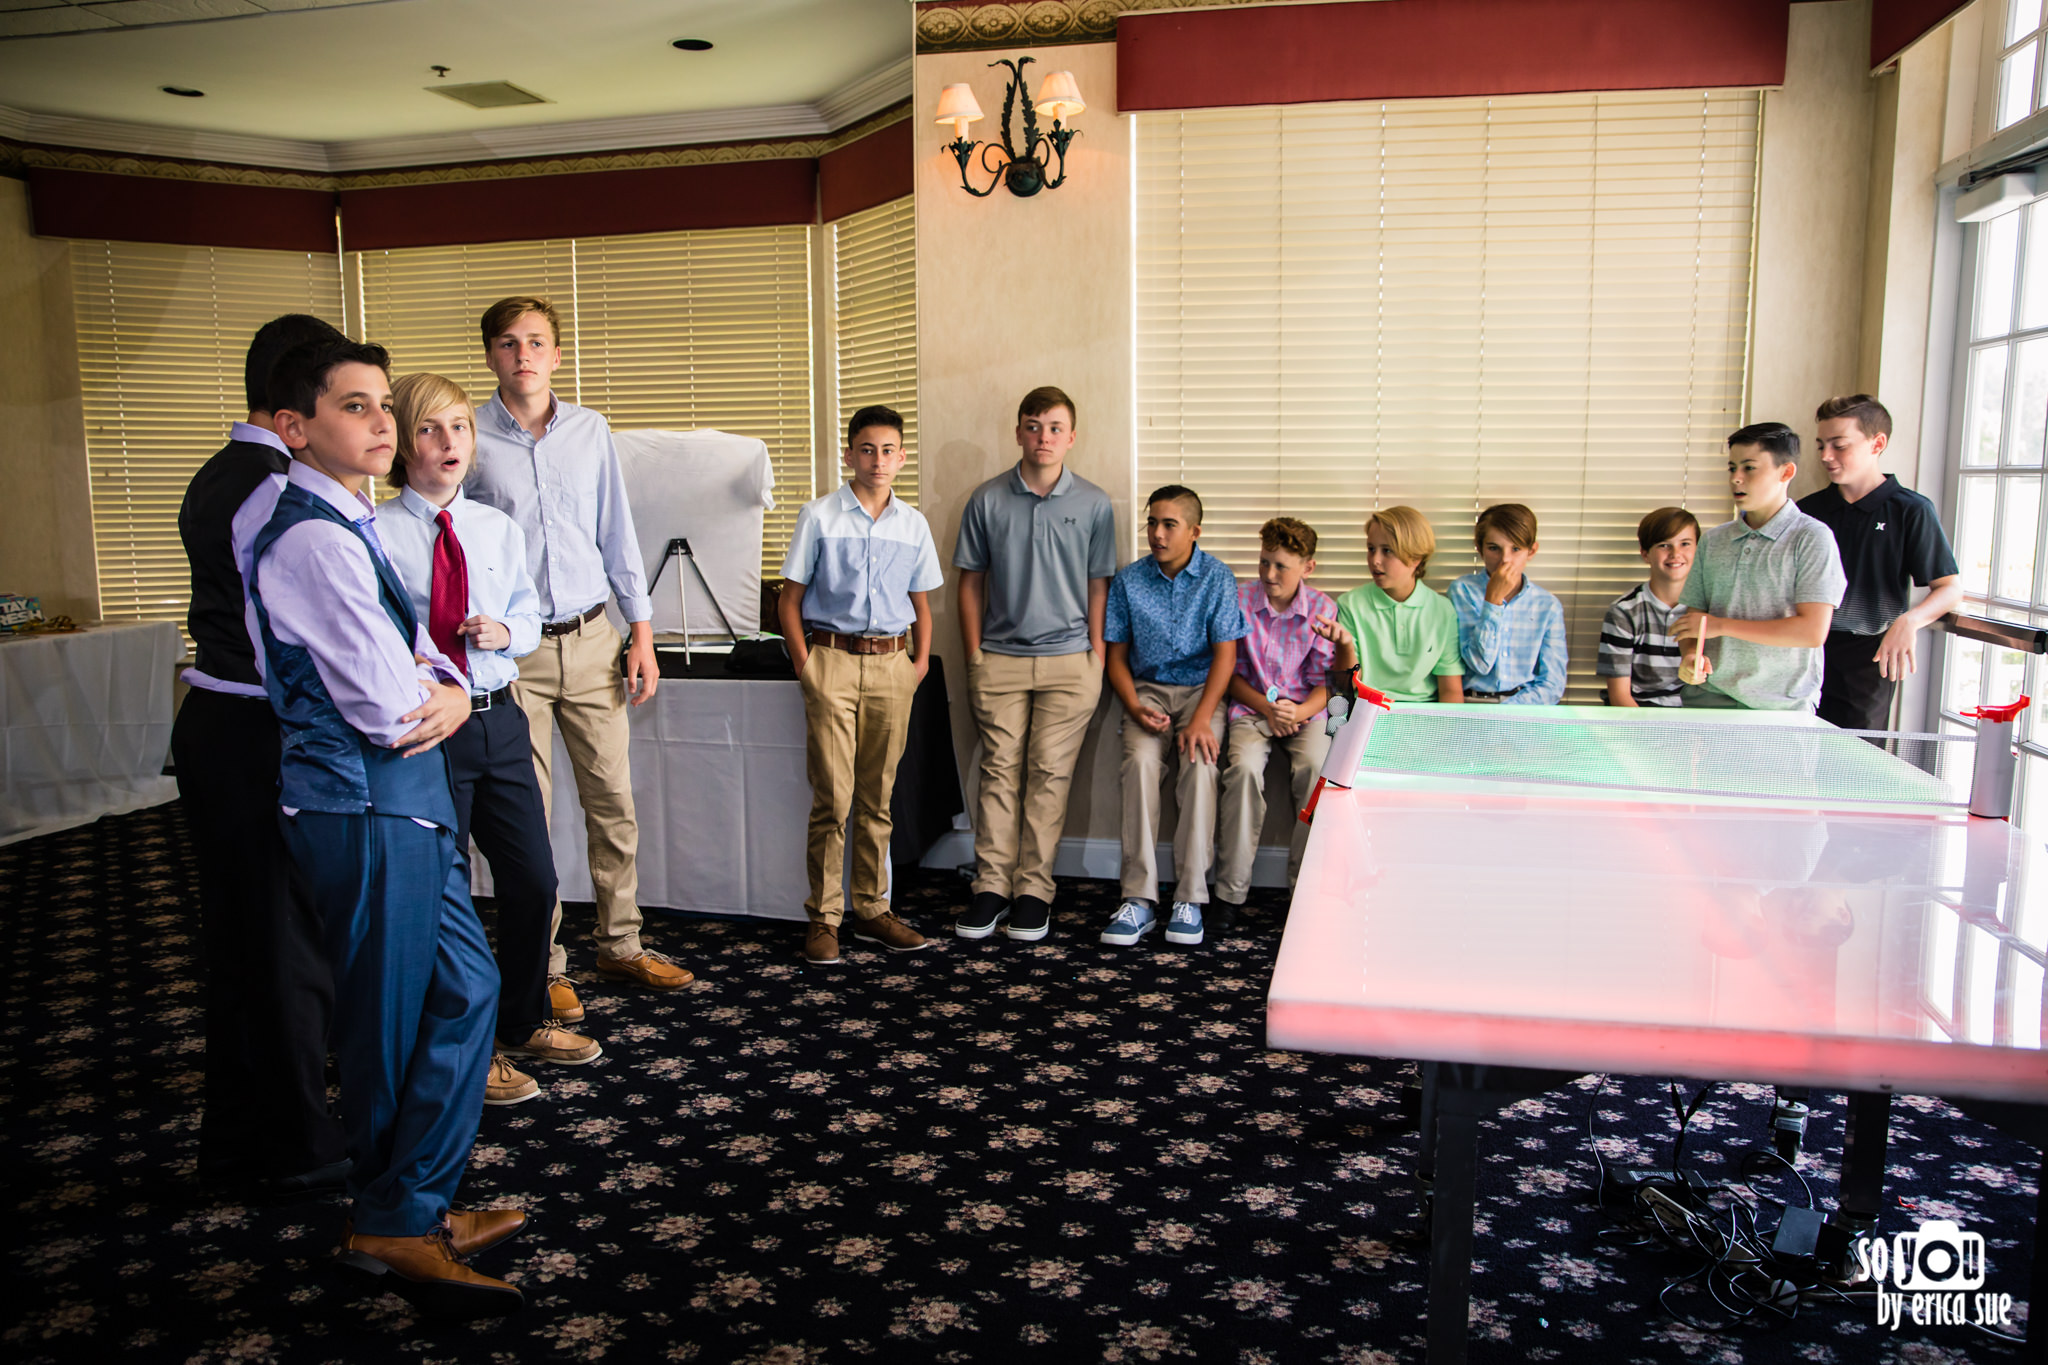 so-you-by-erica-sue-bnai-mitzvah-photographer-delray-beach-golf-club-fl-3378.jpg